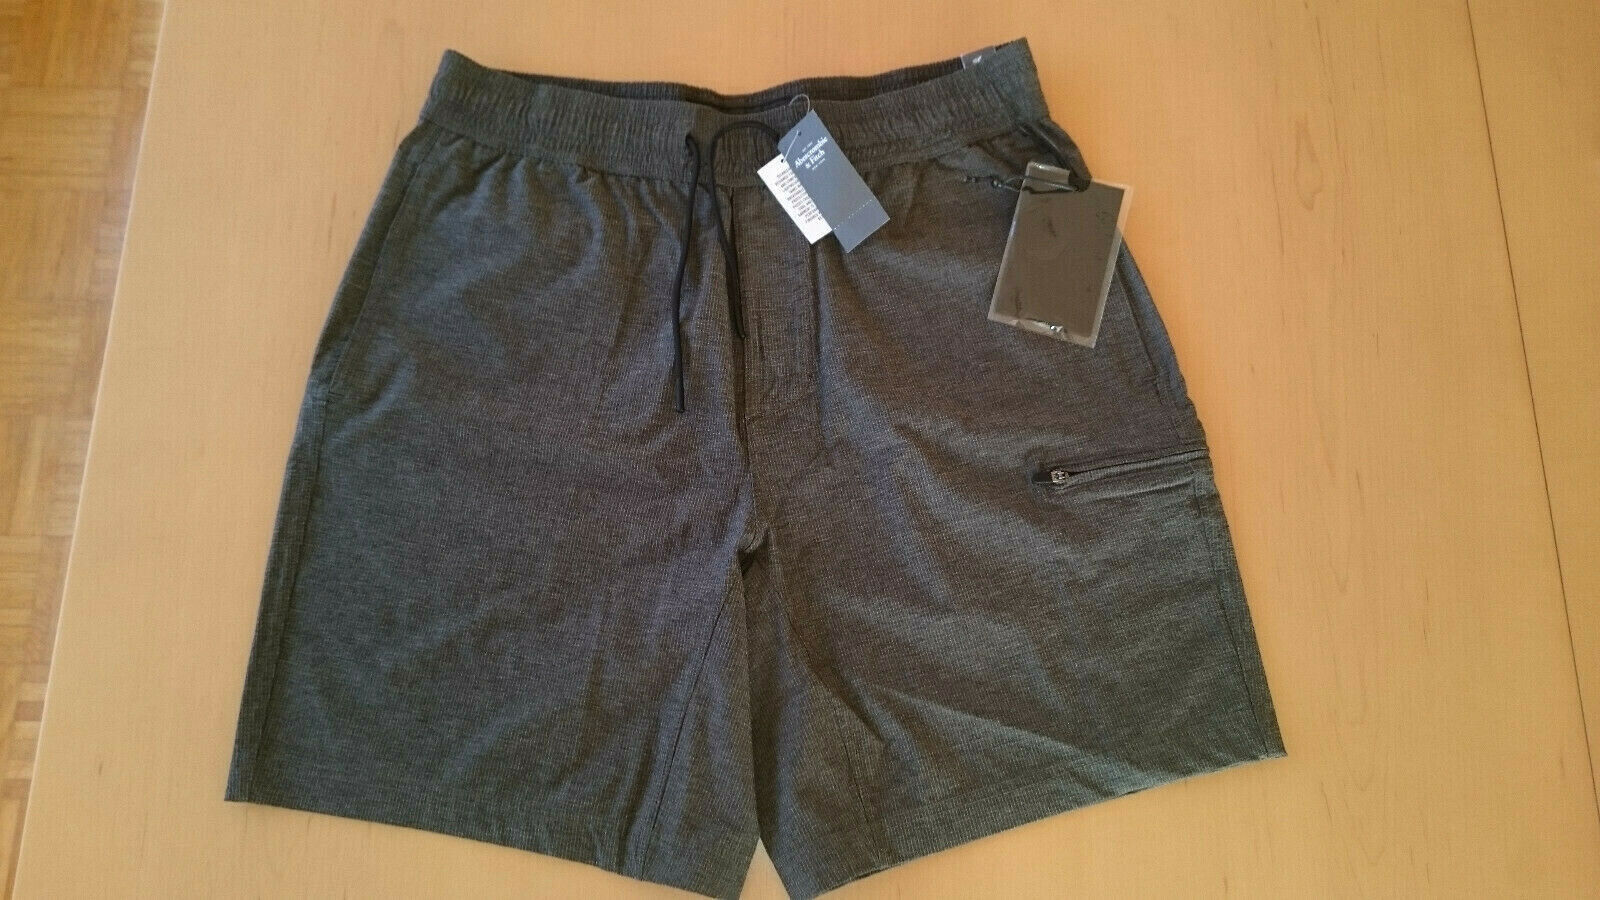 Abercrombie & Fitch Herren Strandhose / Badehose Gr.M NP 74 €